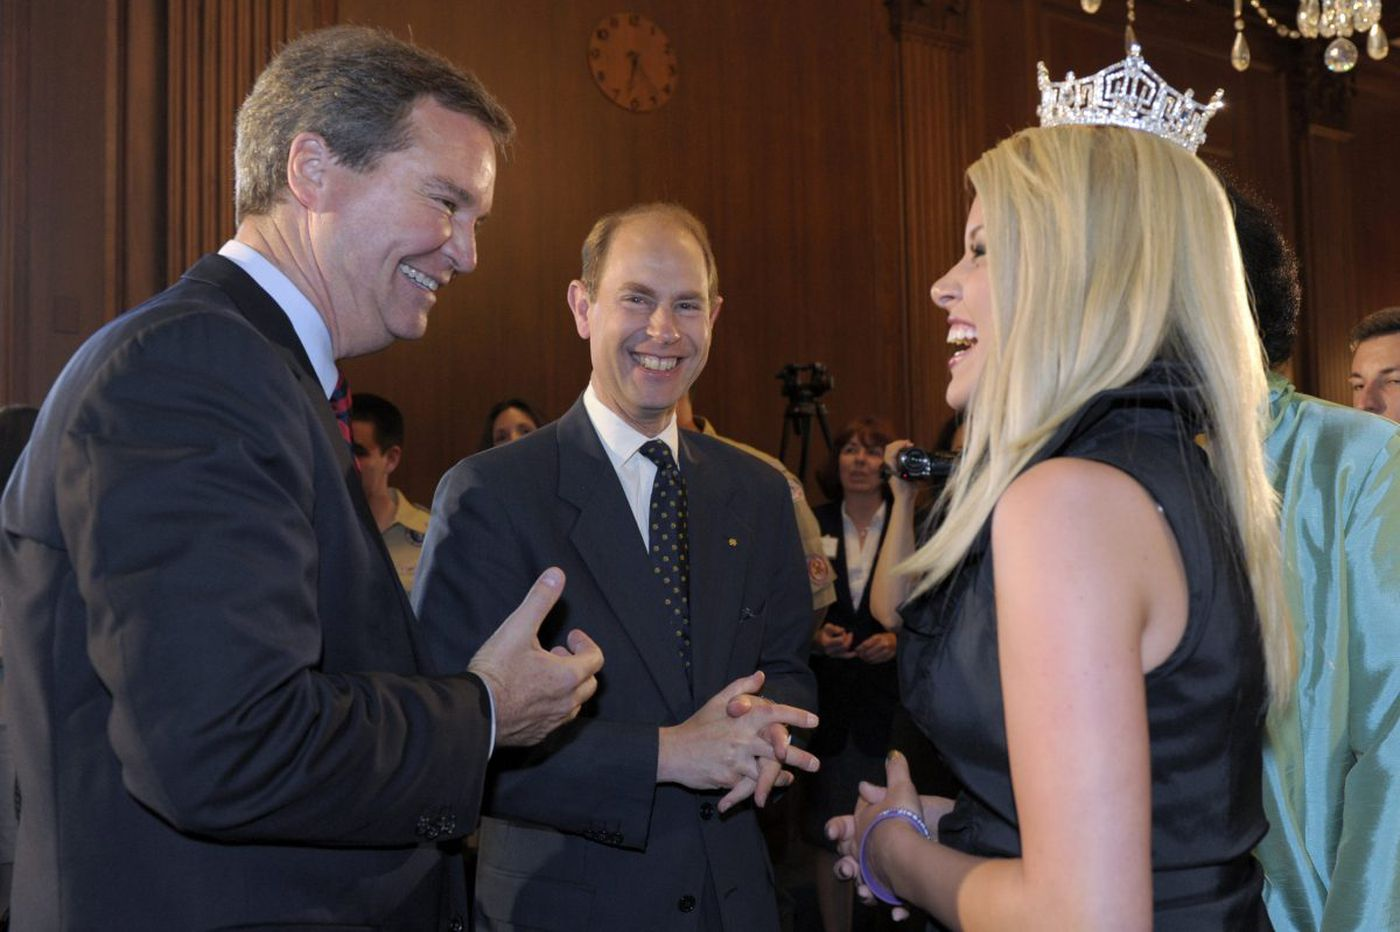 Miss America CEO Sam Haskell's disgusting emails should be considered abuse